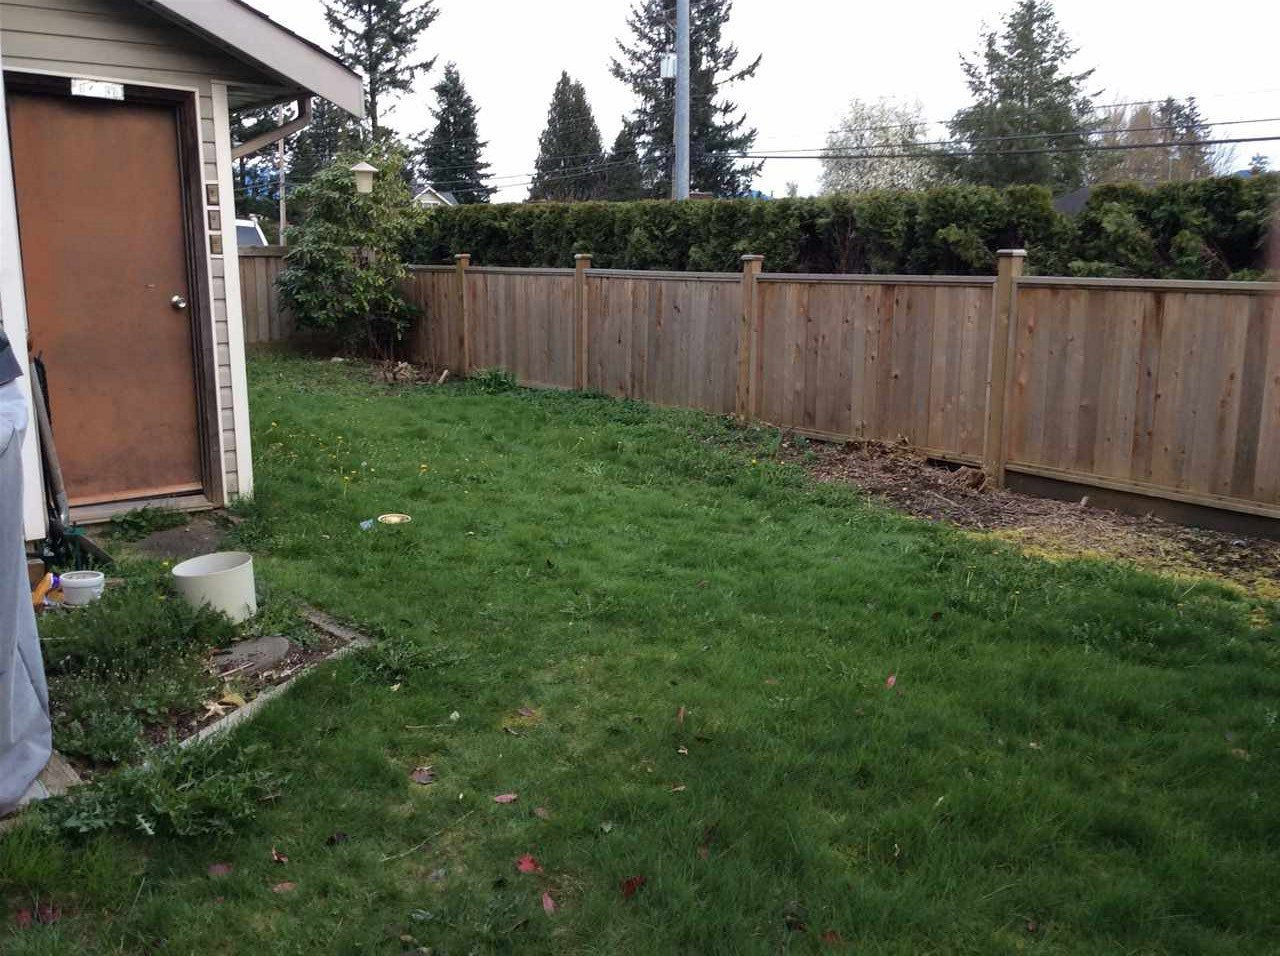 """Photo 6: Photos: 1 33917 MARSHALL Road in Abbotsford: Central Abbotsford Townhouse for sale in """"Marshall Court"""" : MLS®# R2153968"""